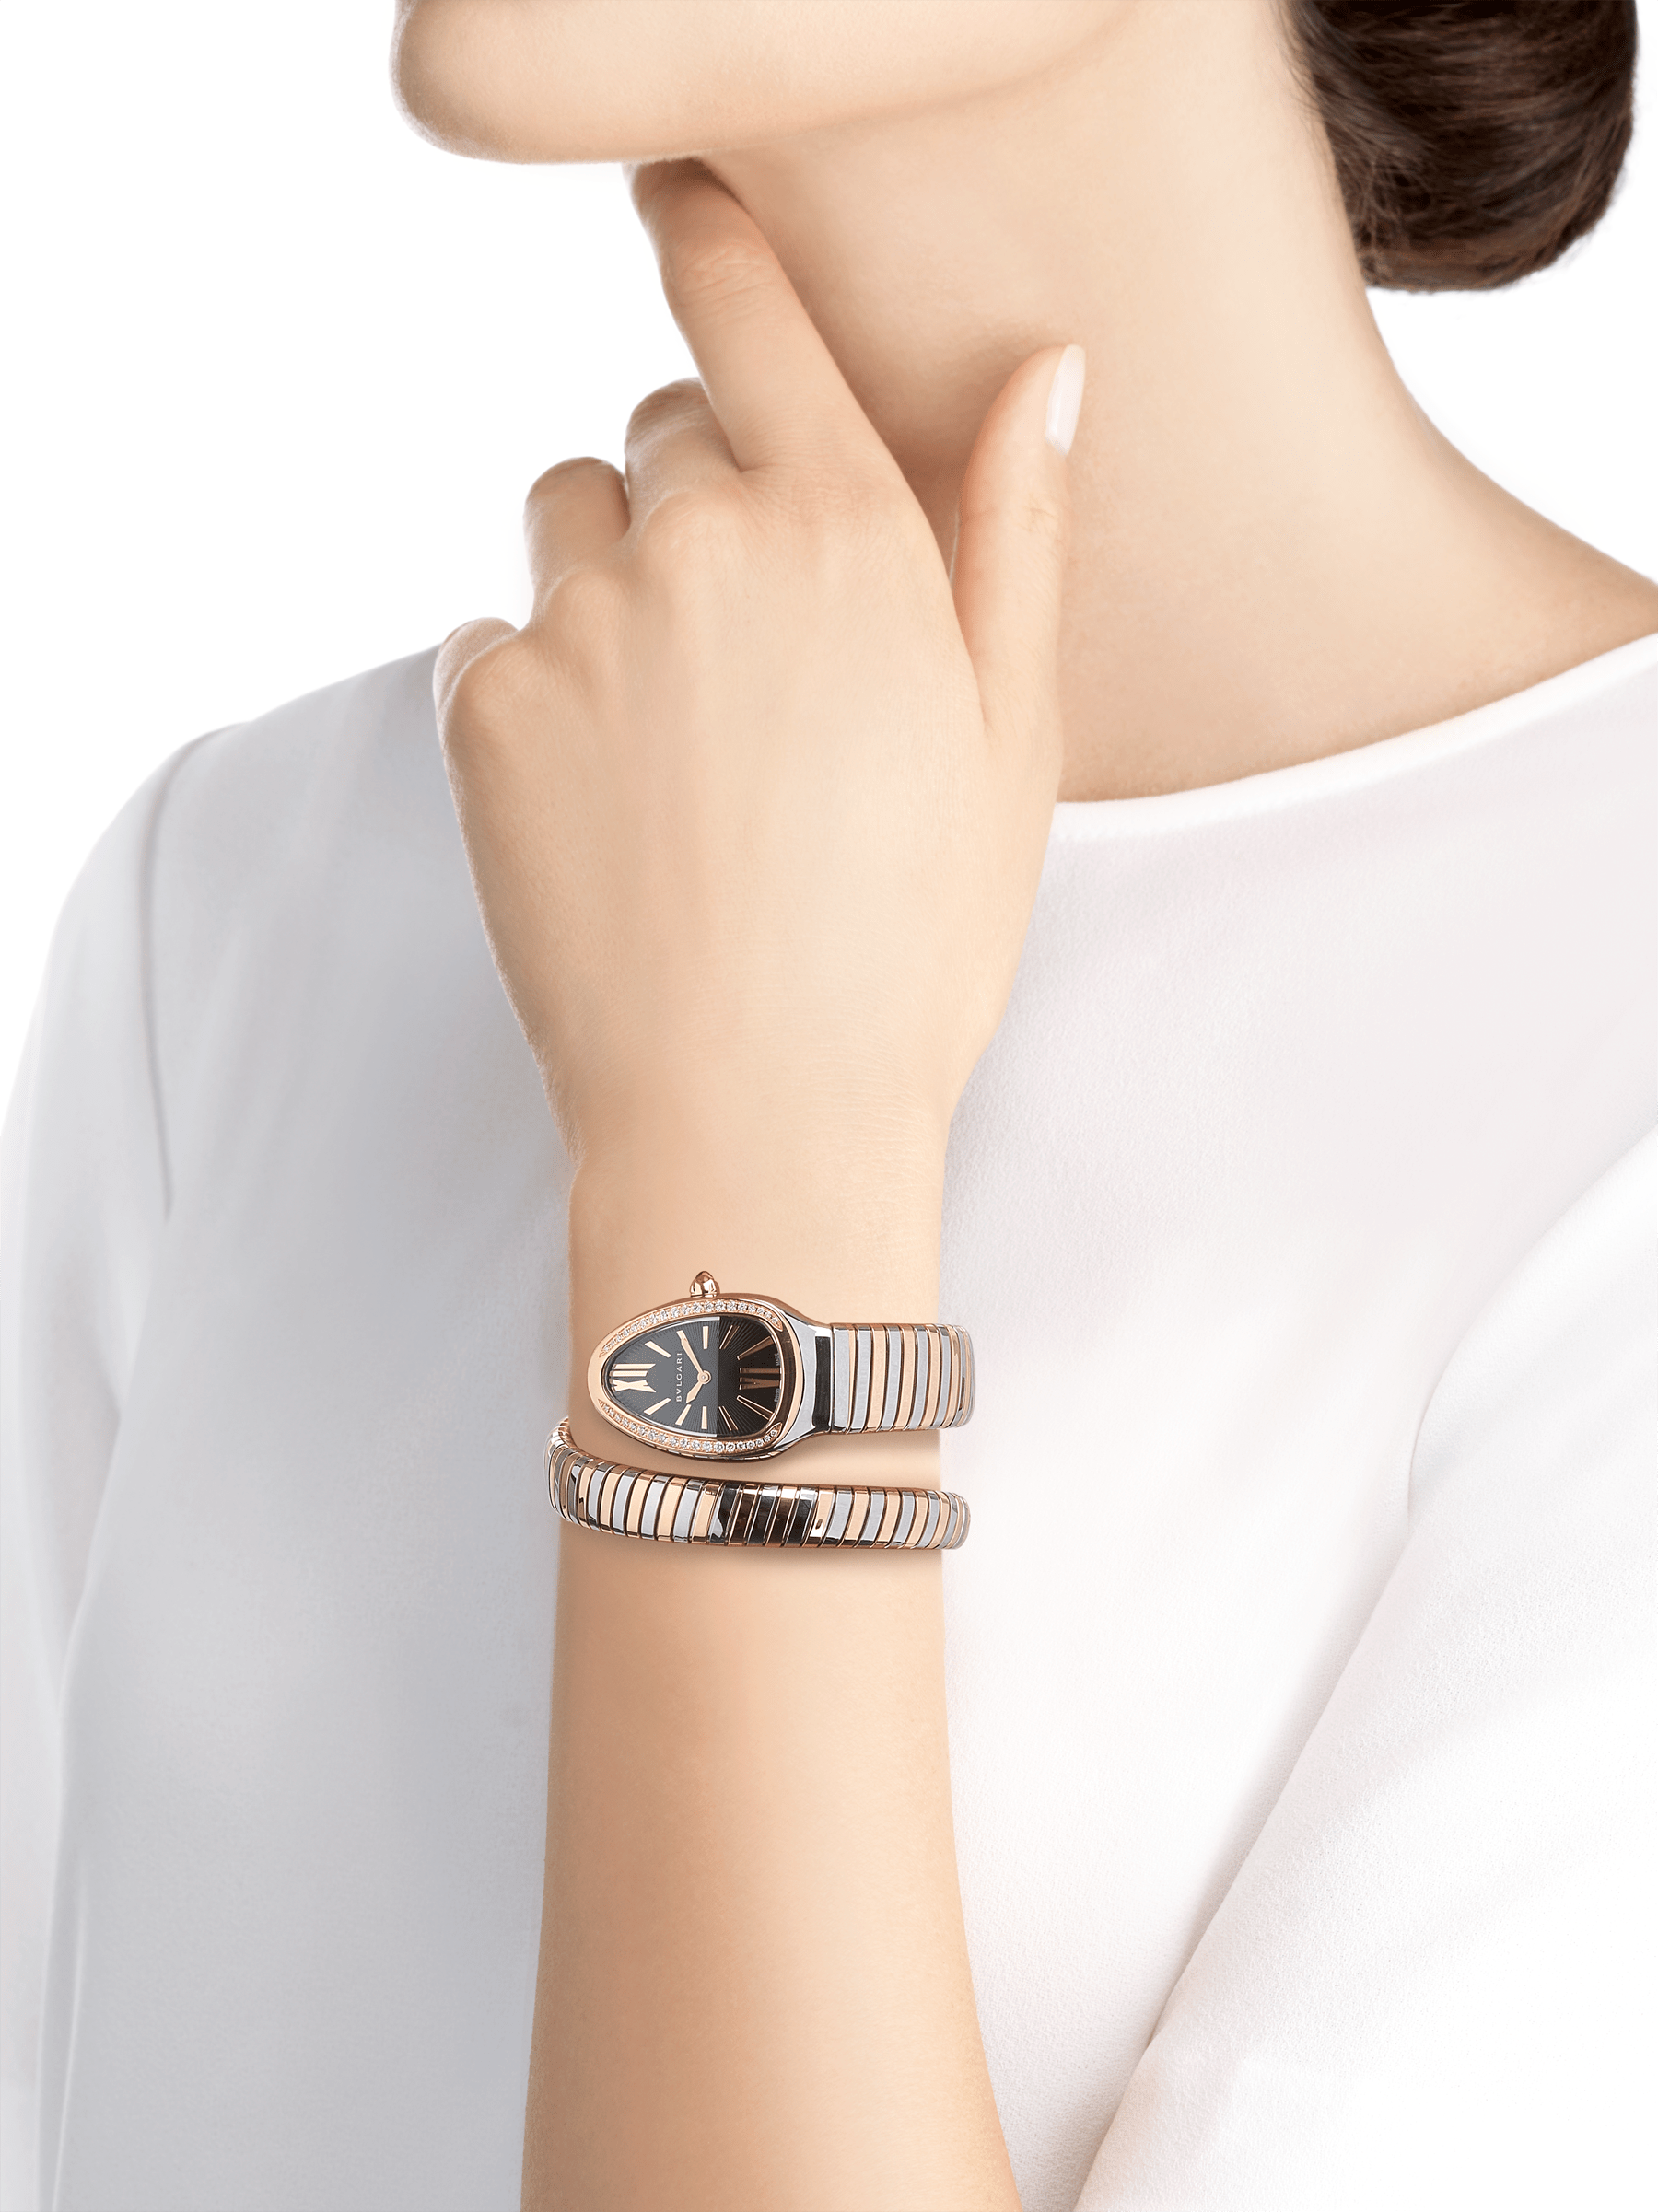 Serpenti Tubogas single spiral watch with stainless steel case, 18 kt rose gold bezel set with brilliant cut diamonds, black opaline dial, 18 kt rose gold and stainless steel bracelet. 102098 image 4